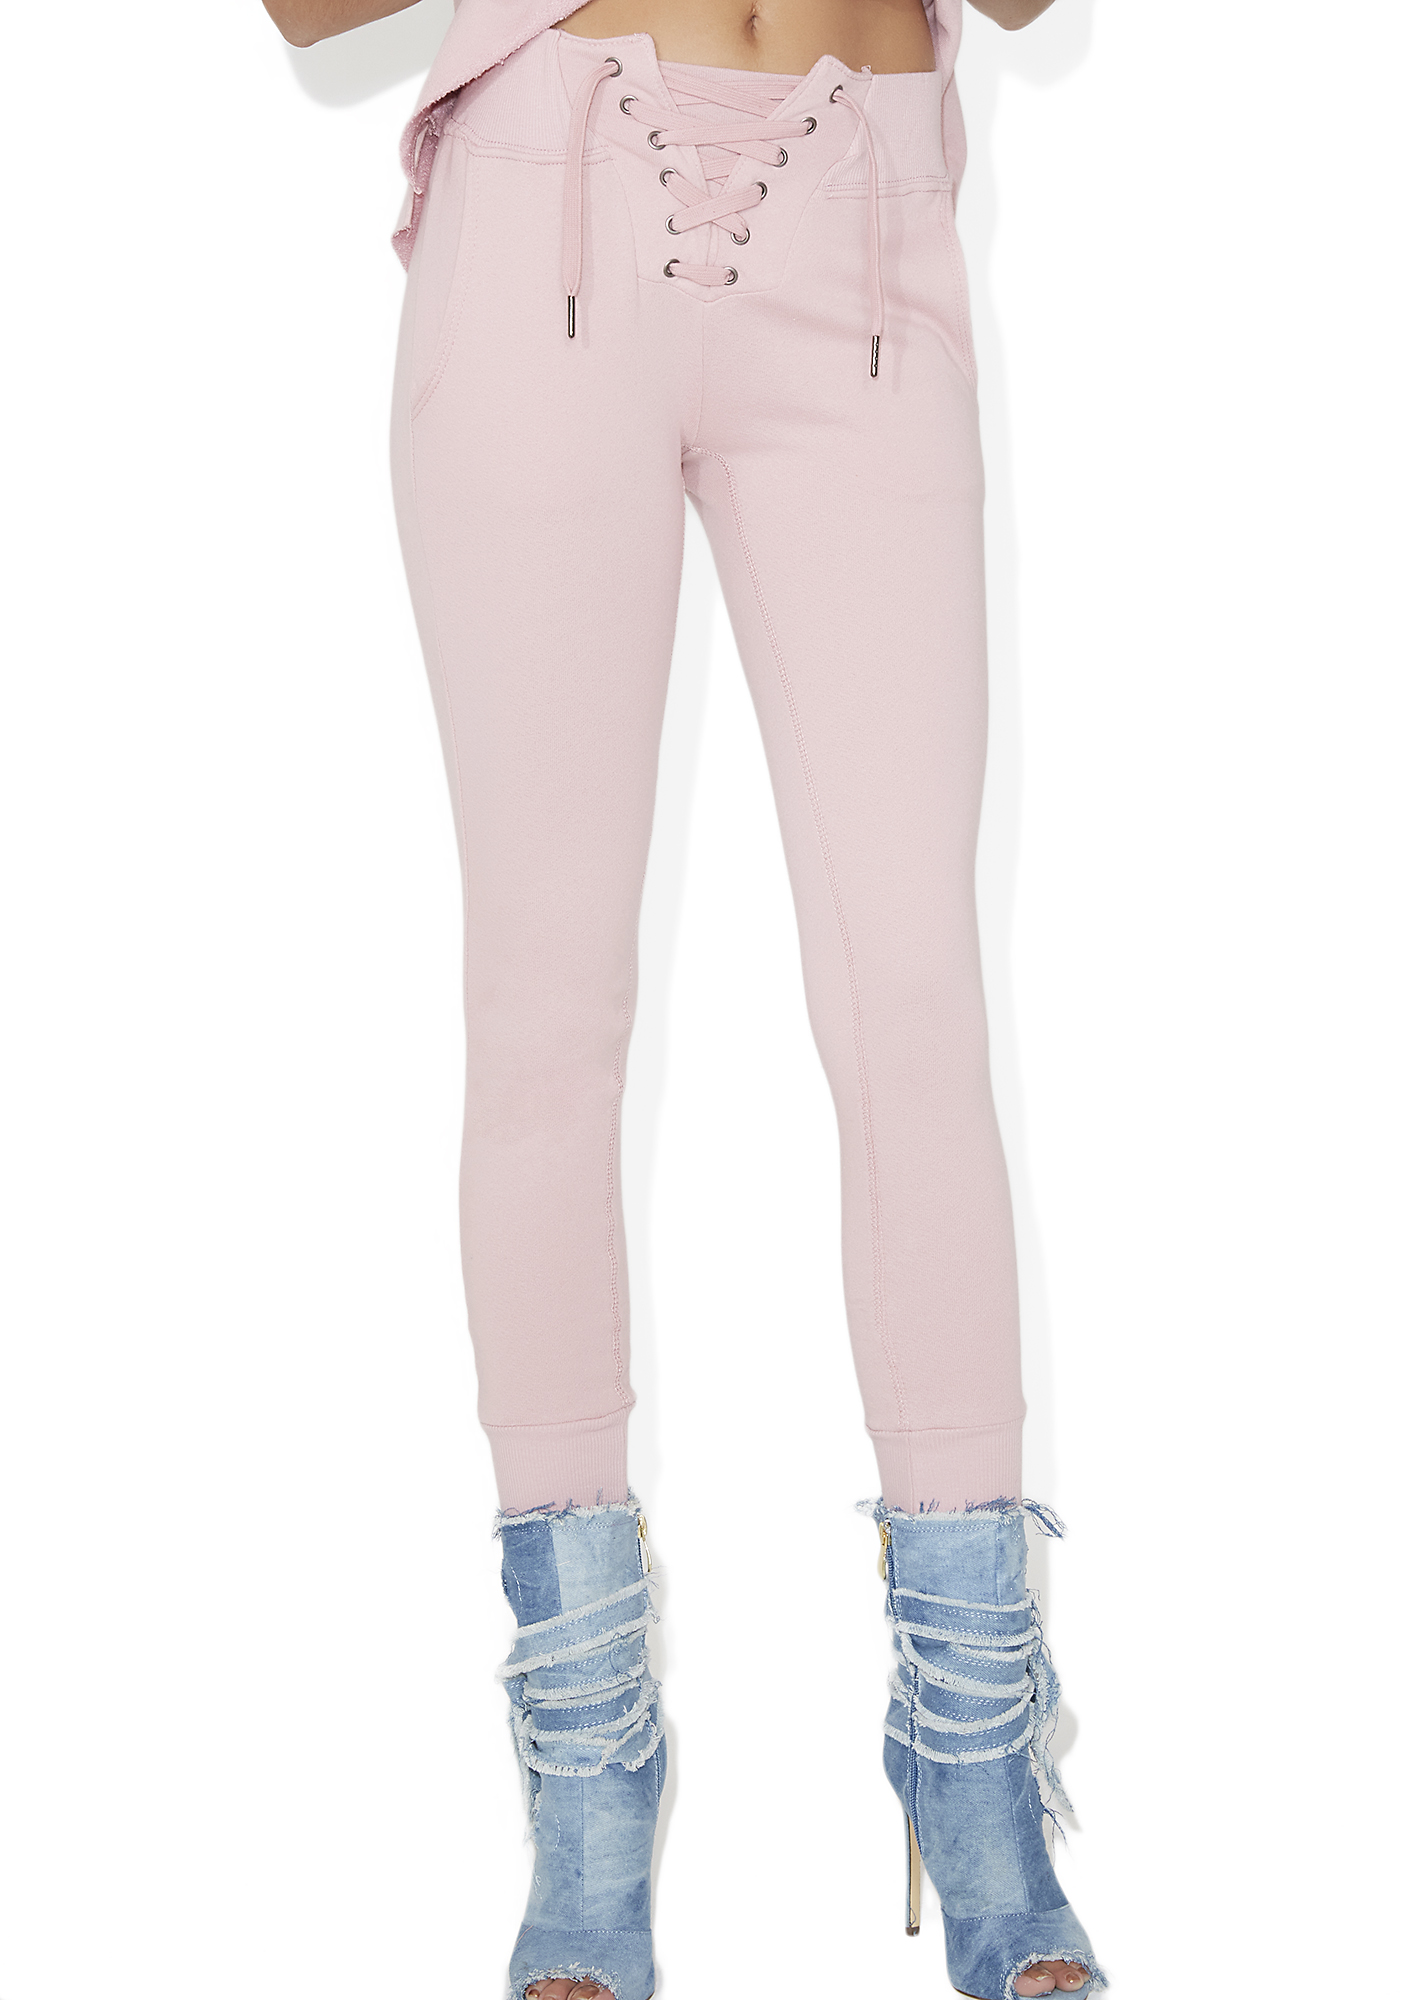 Lace Up Fitted Jogger Sweatpants Pink